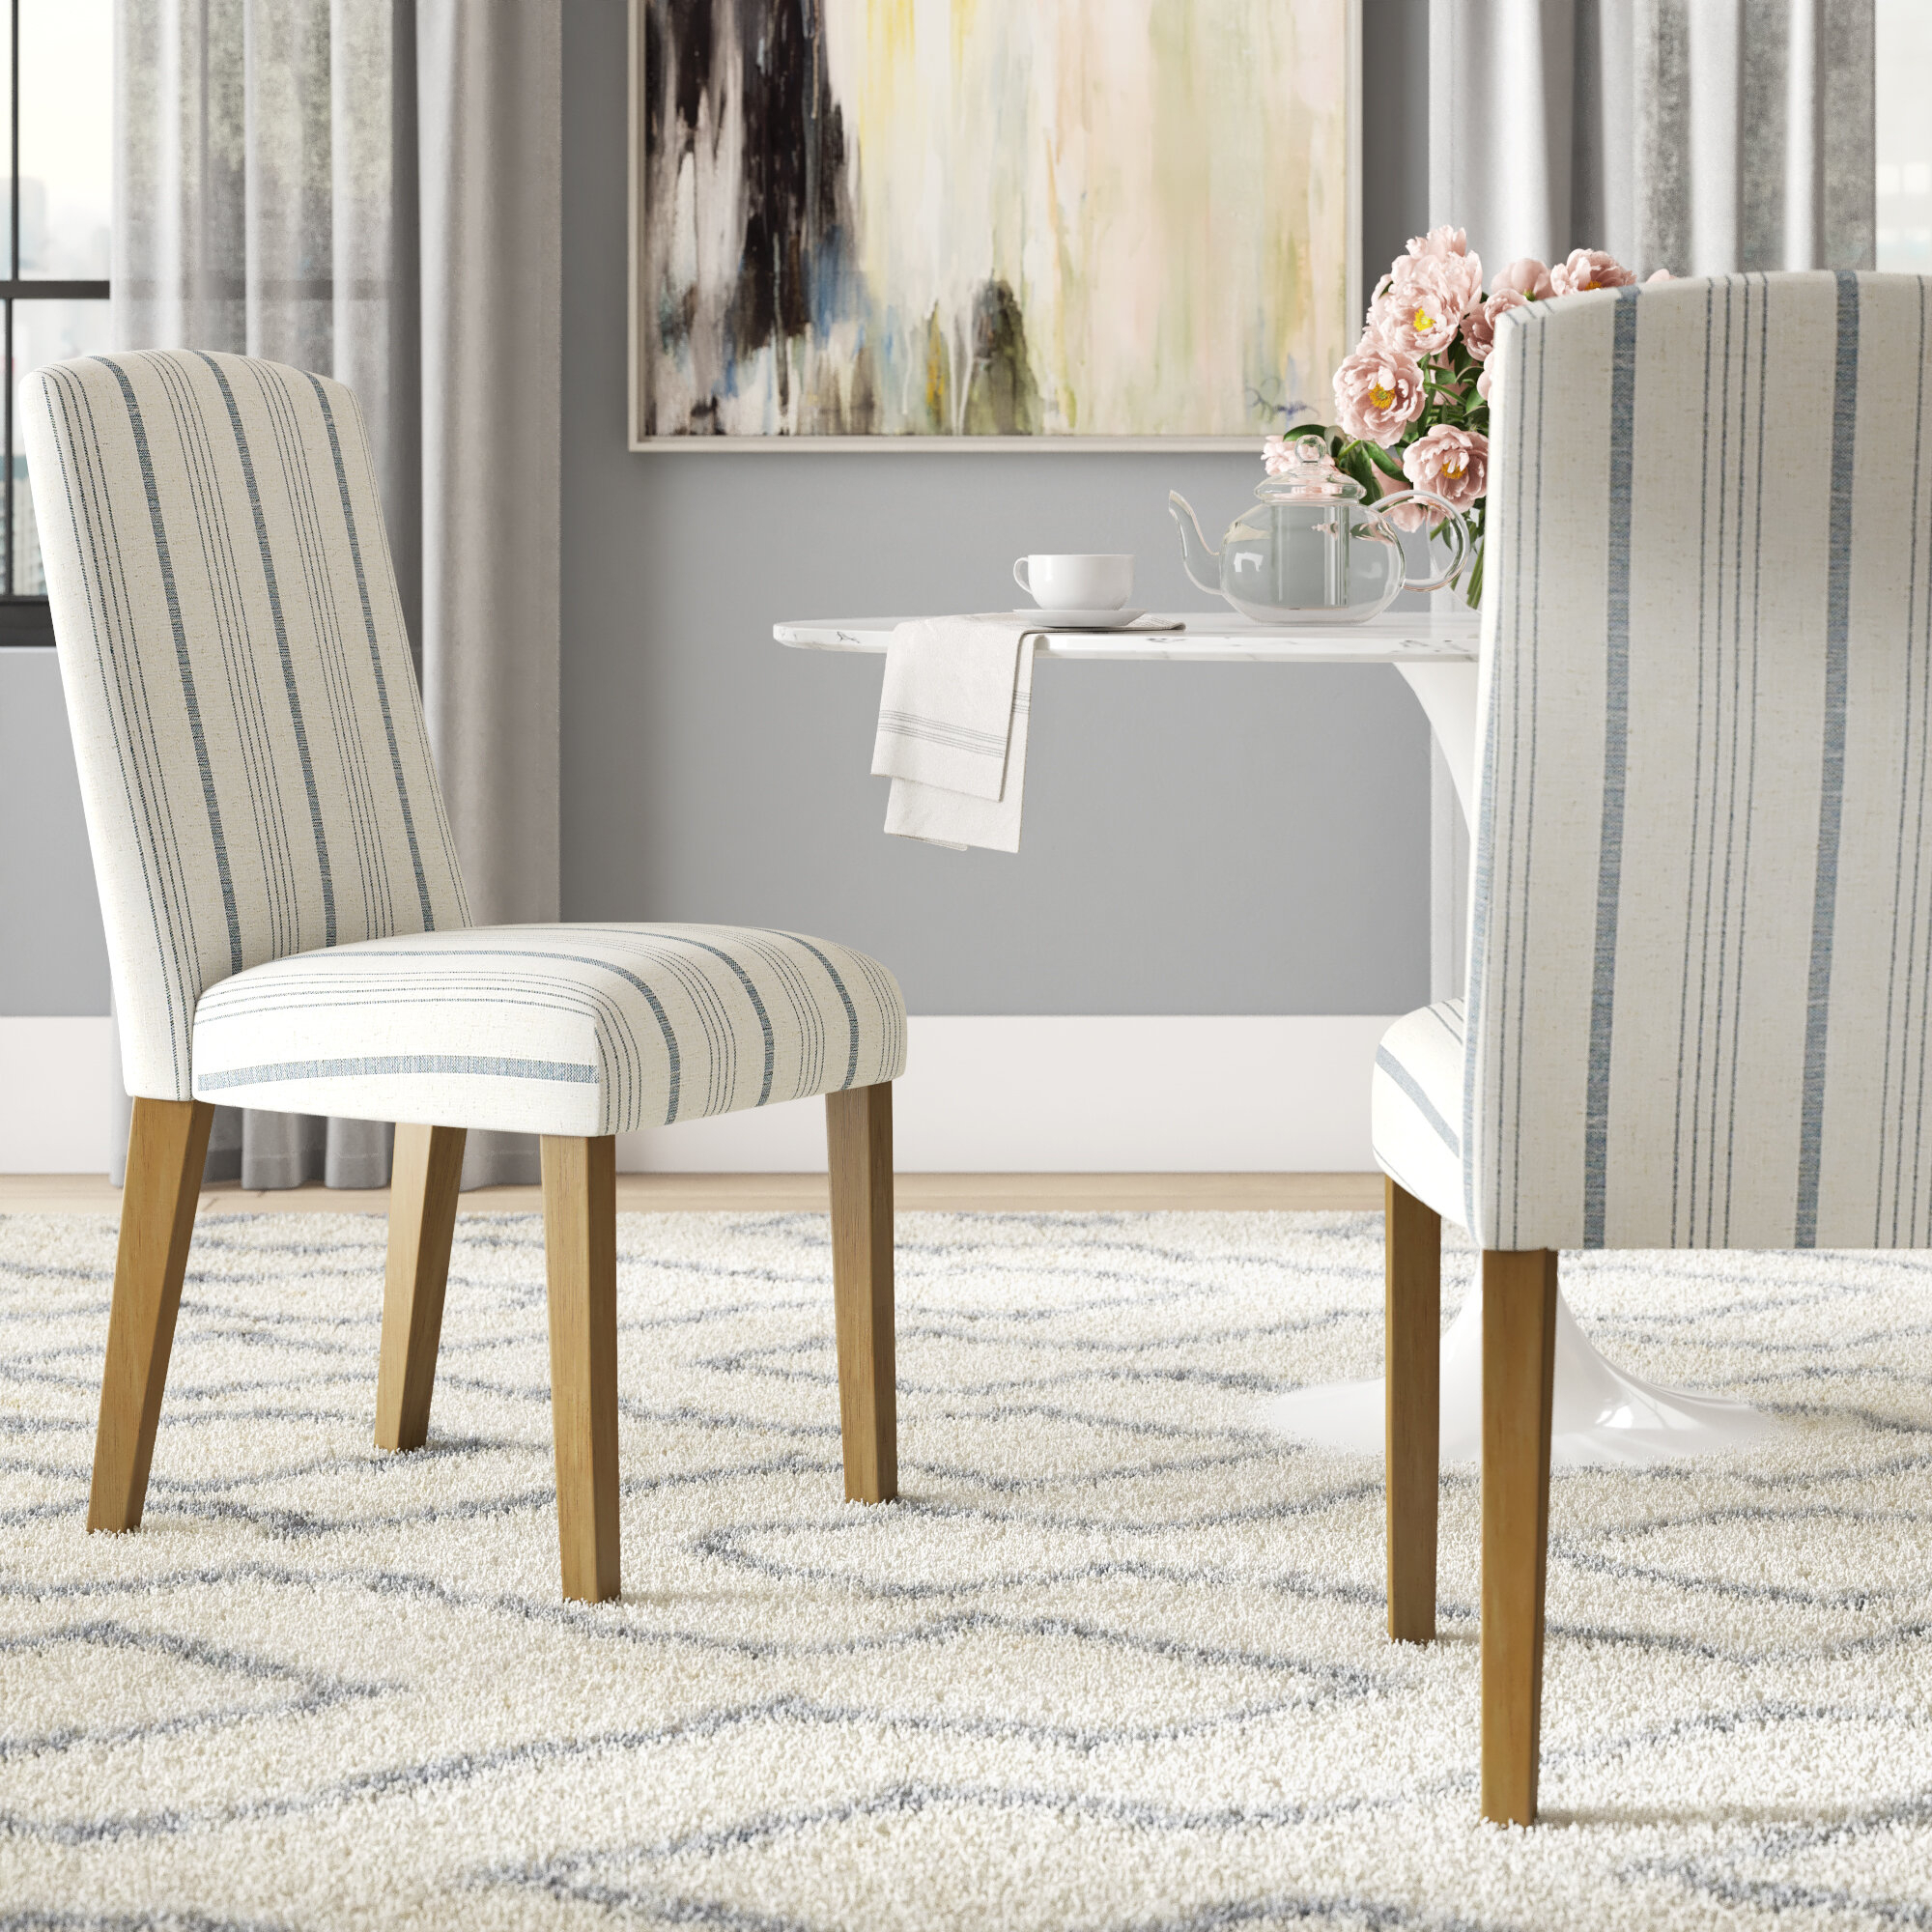 Louis Upholstered Dining Chair In Bob Stripe Upholstered Dining Chairs (Set Of 2) (View 15 of 15)